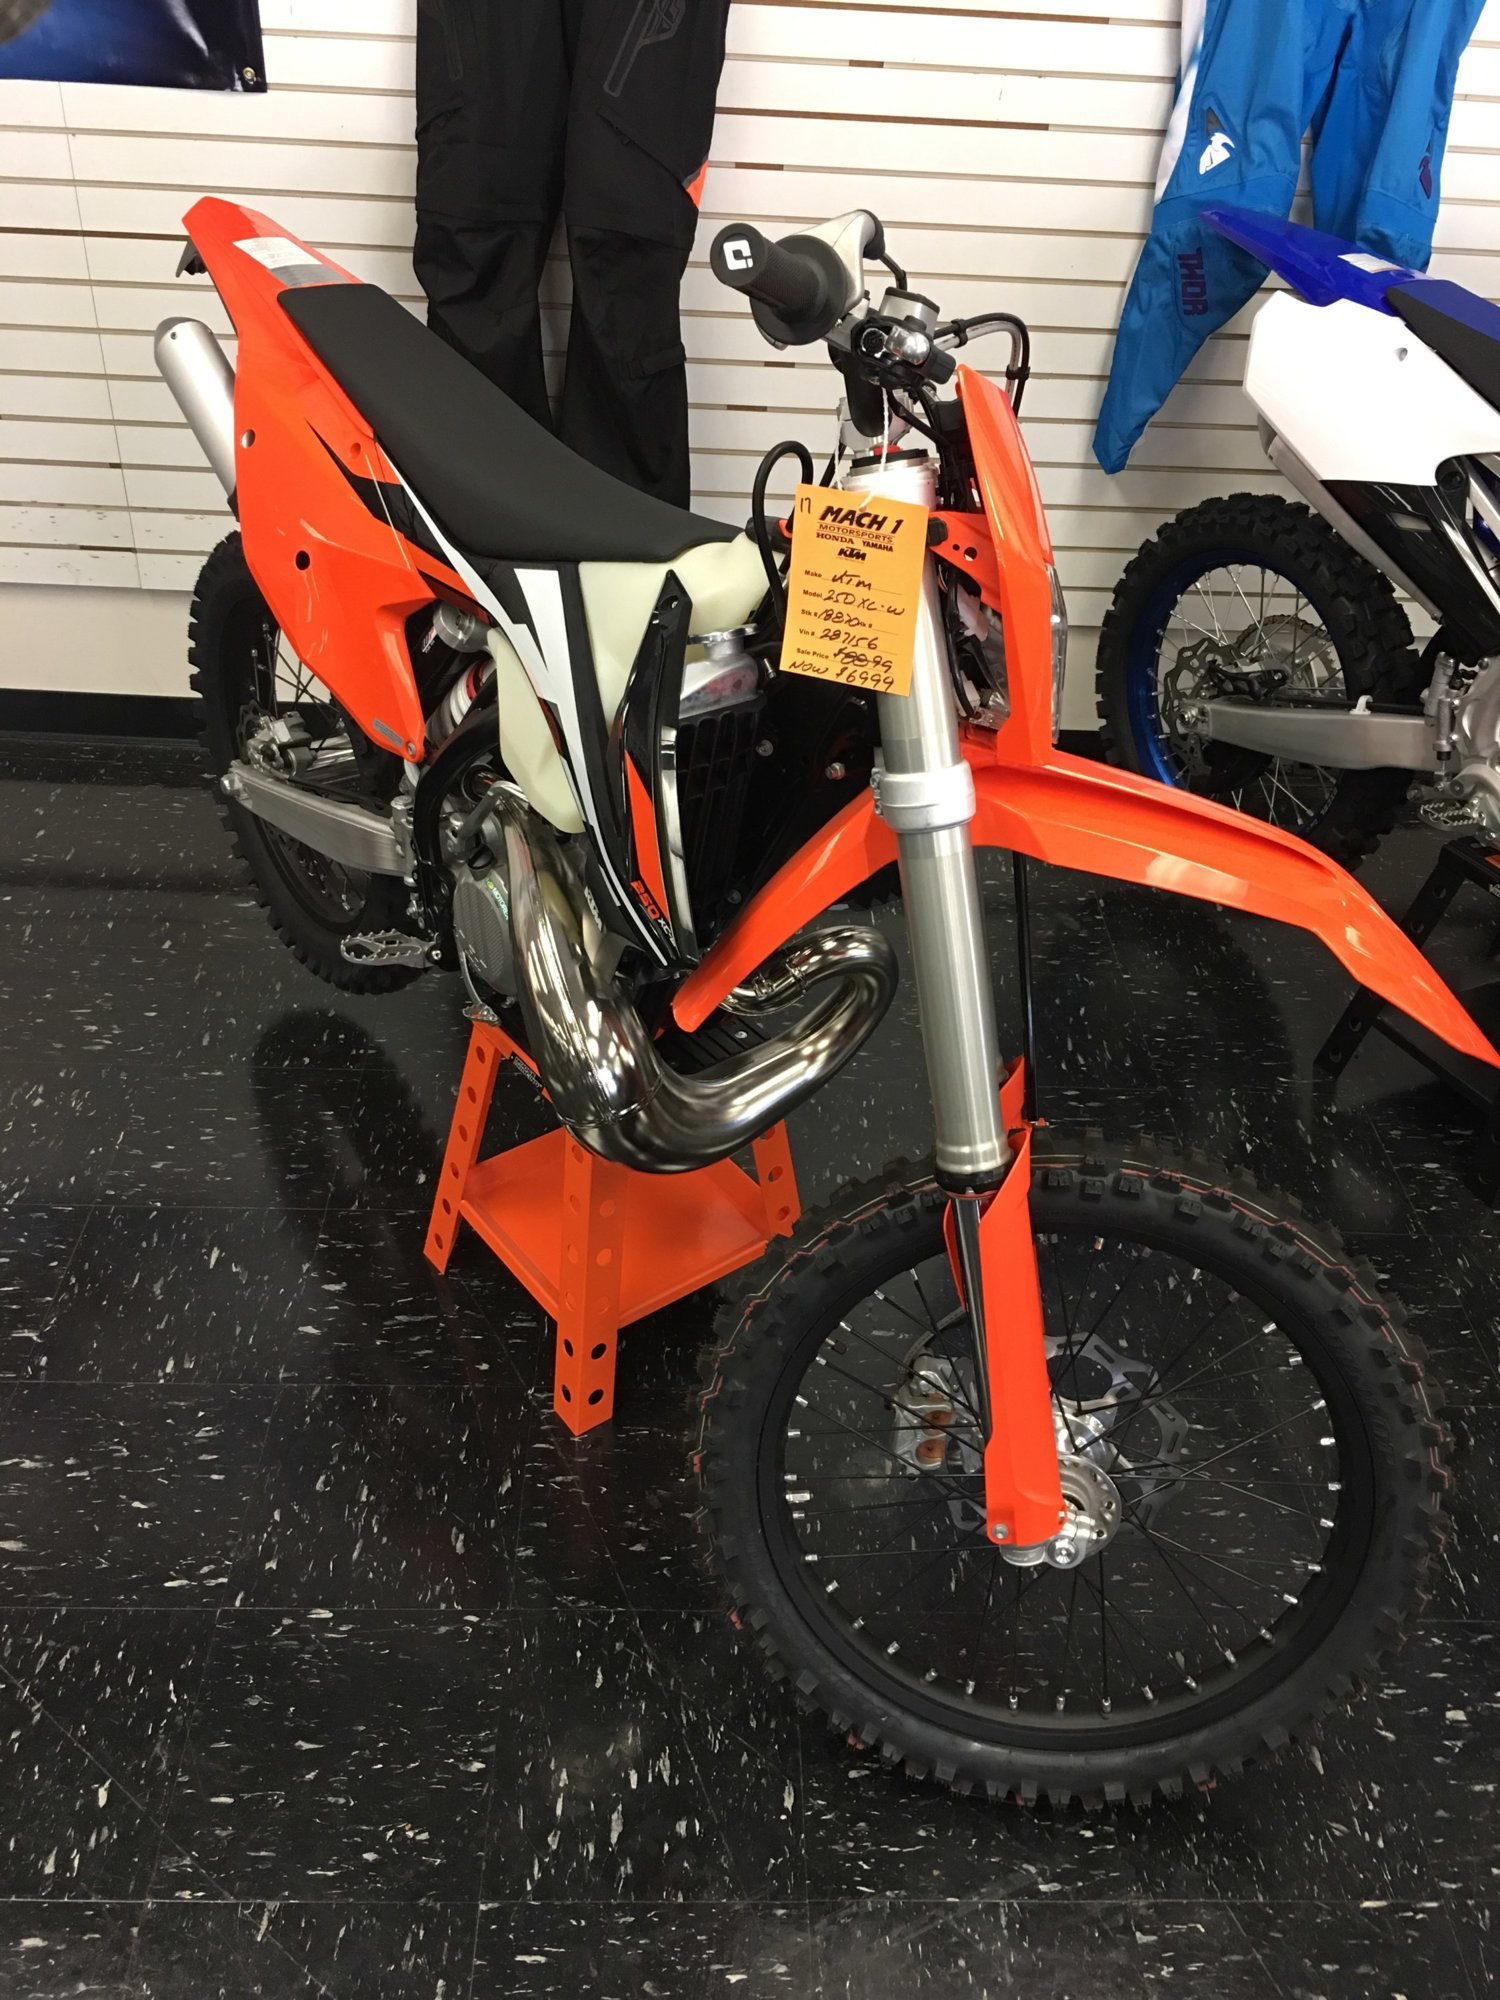 Opinion on 2-Stroke Ban | South Bay Riders